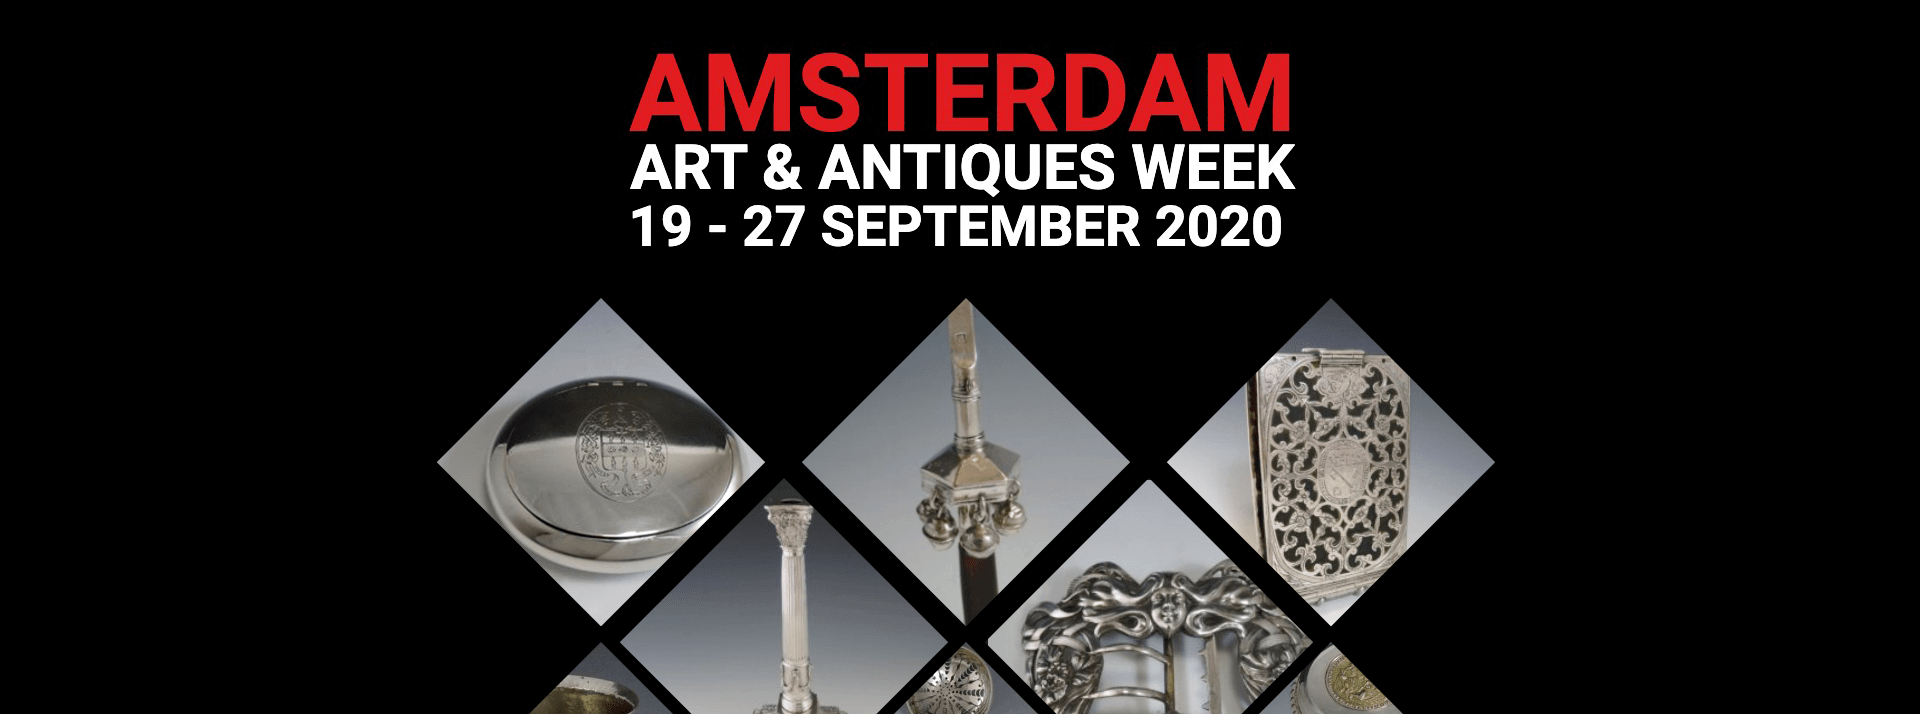 Rondom-1920-ART-ANTIQUES-WEEKEND-2020